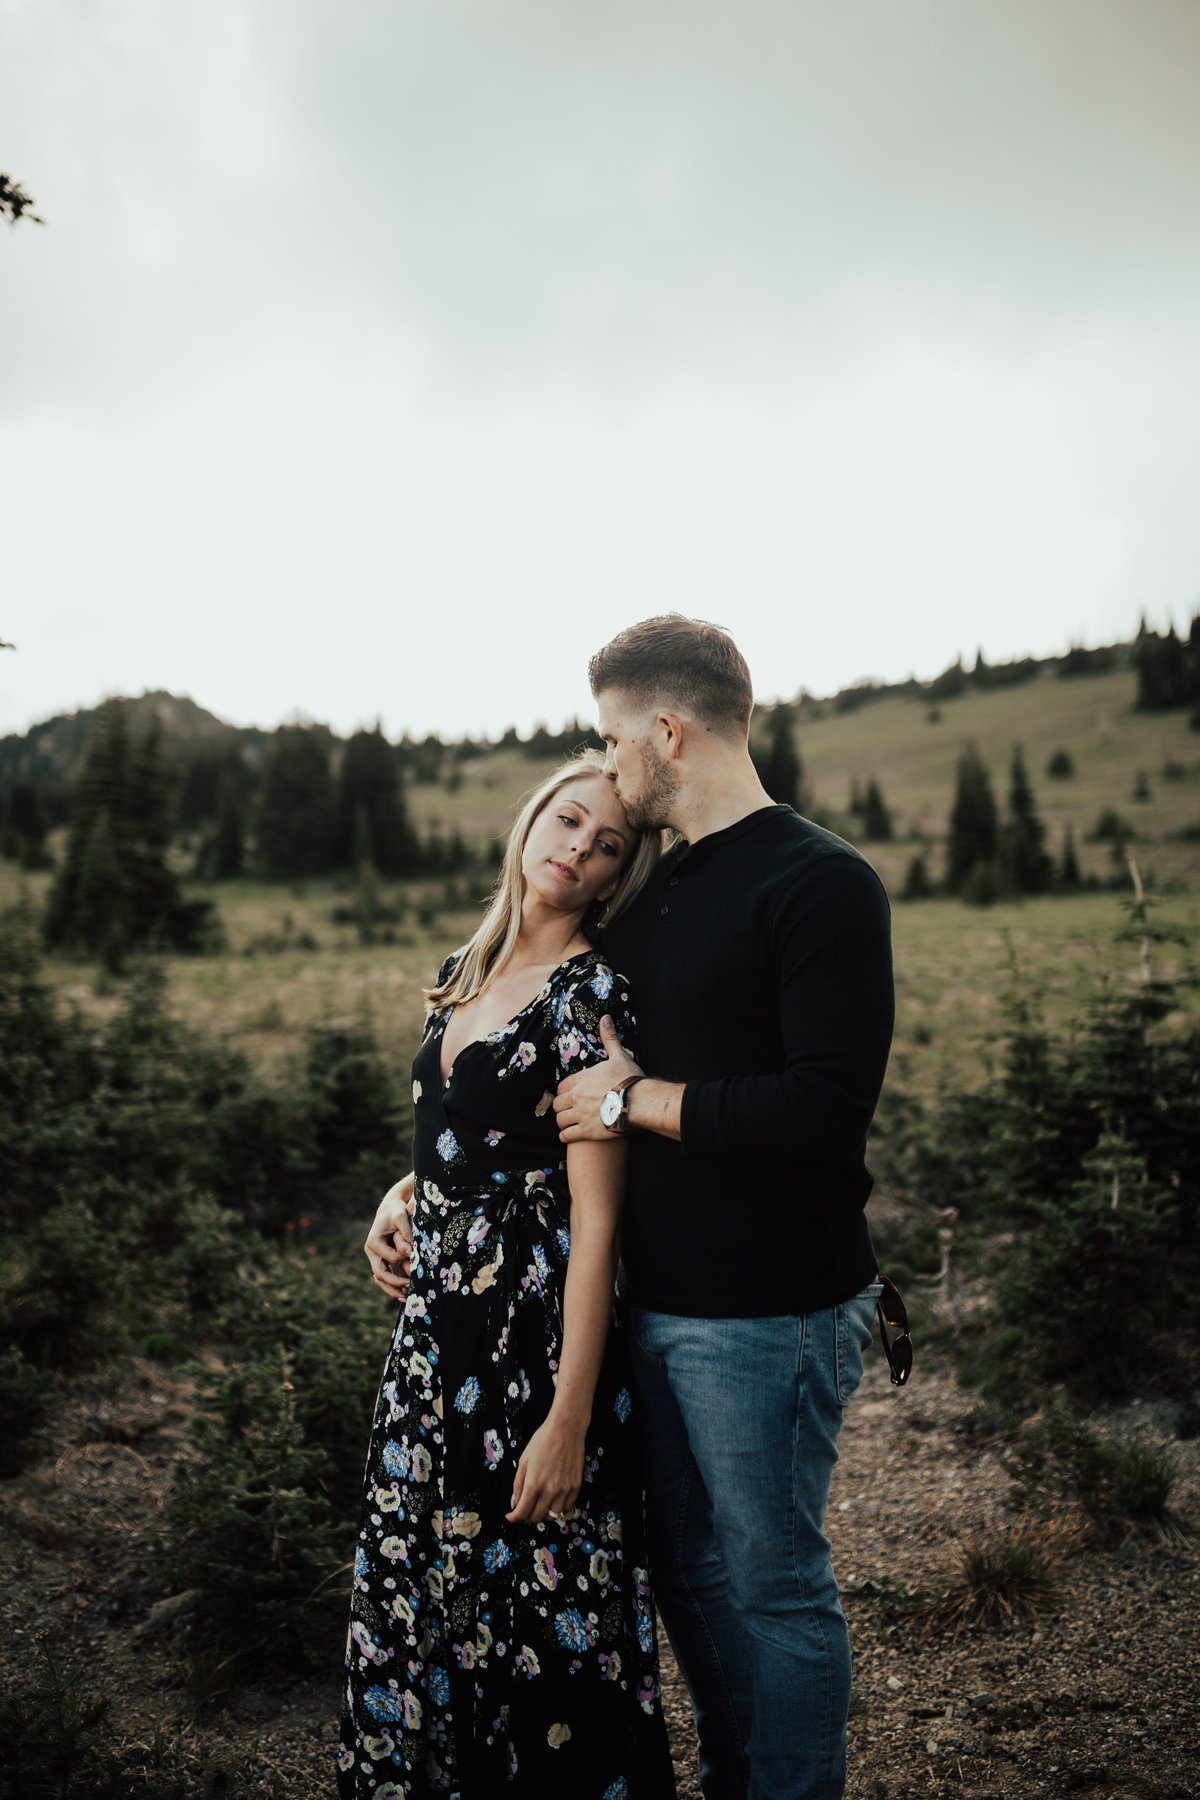 Marnie_Cornell_Photography_Engagement_Mount_Rainier_RK-47